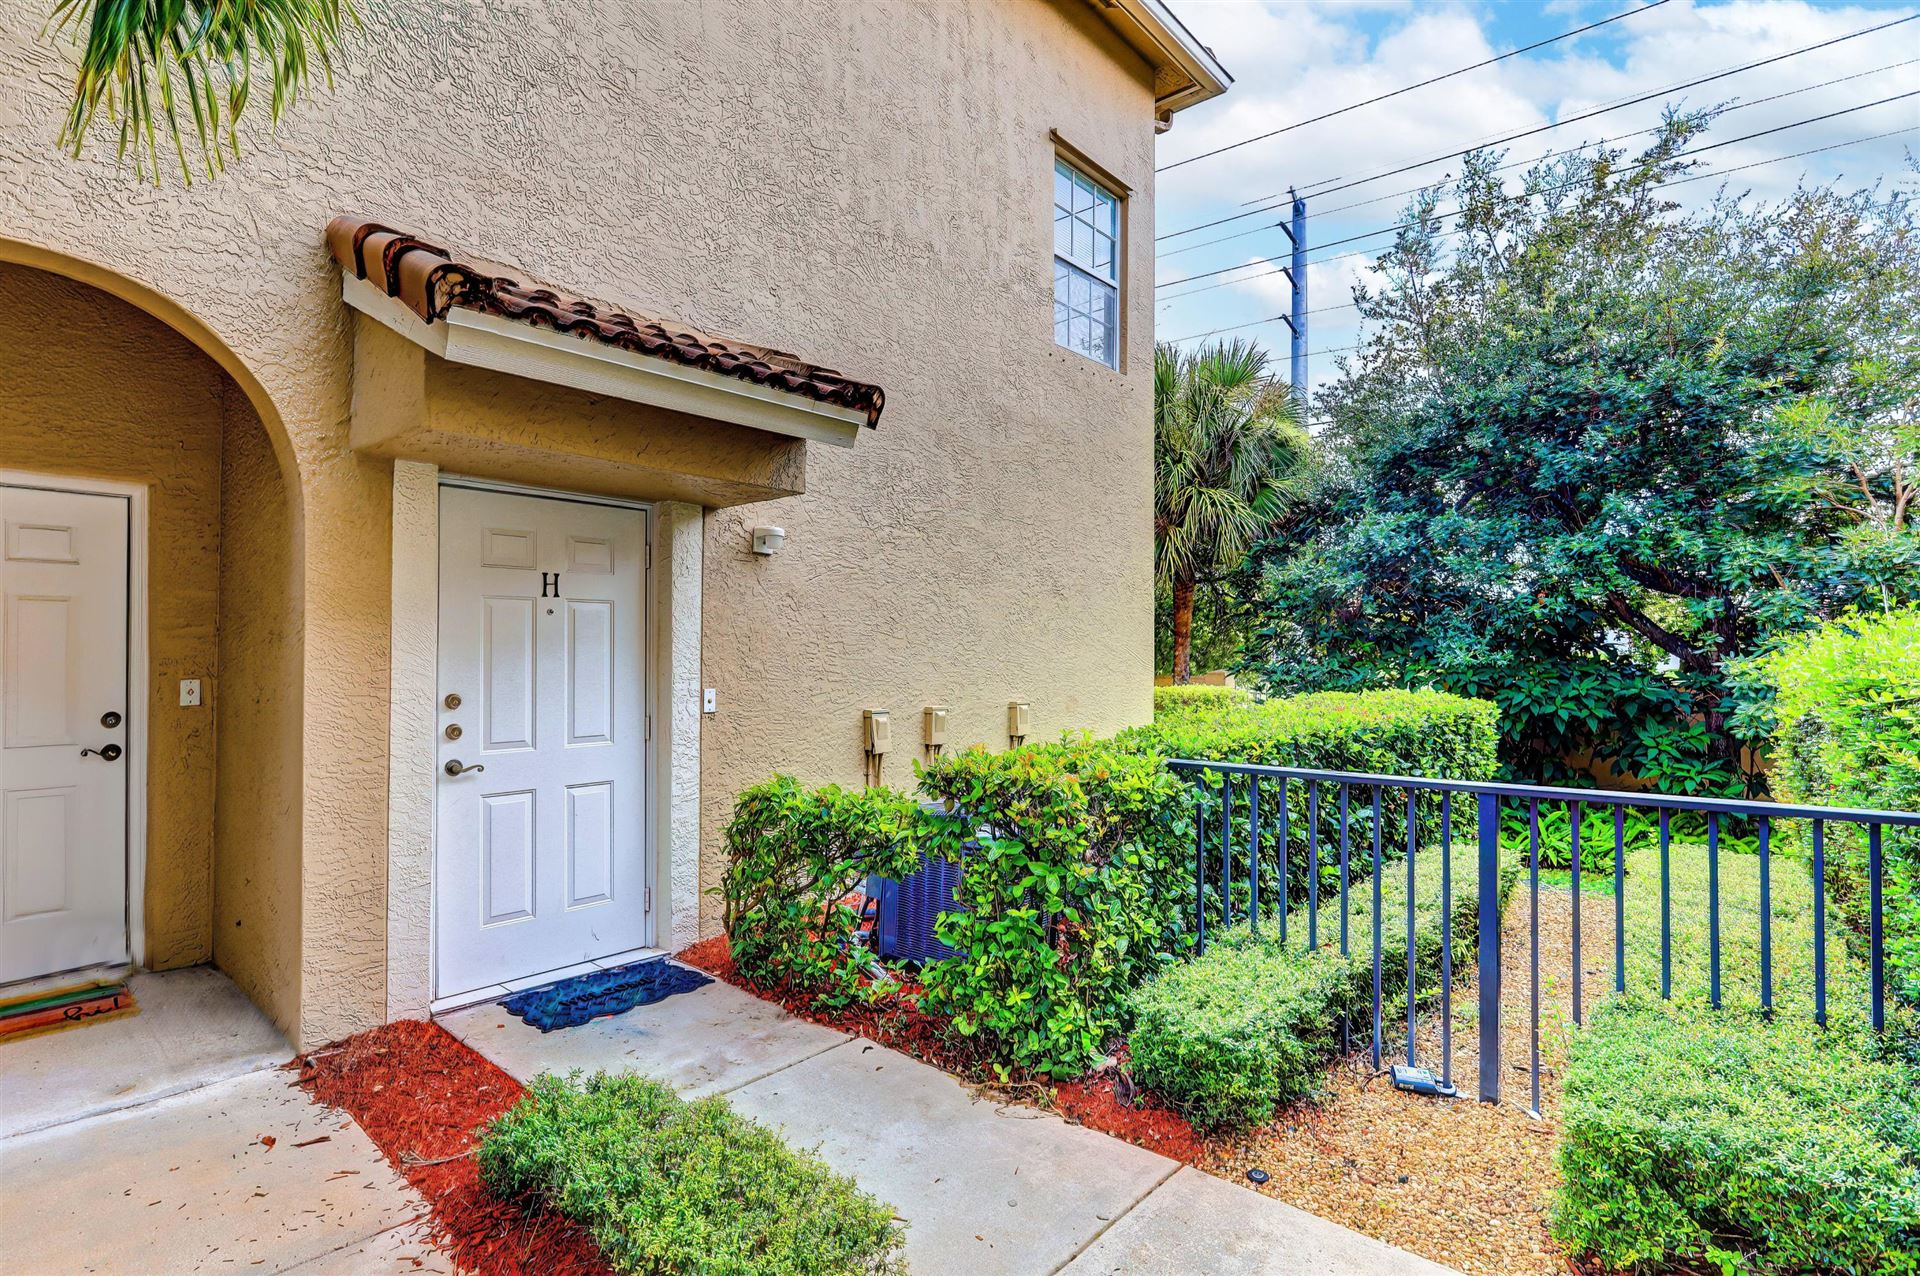 Photo of 113 Lighthouse Circle #H, Tequesta, FL 33469 (MLS # RX-10733382)